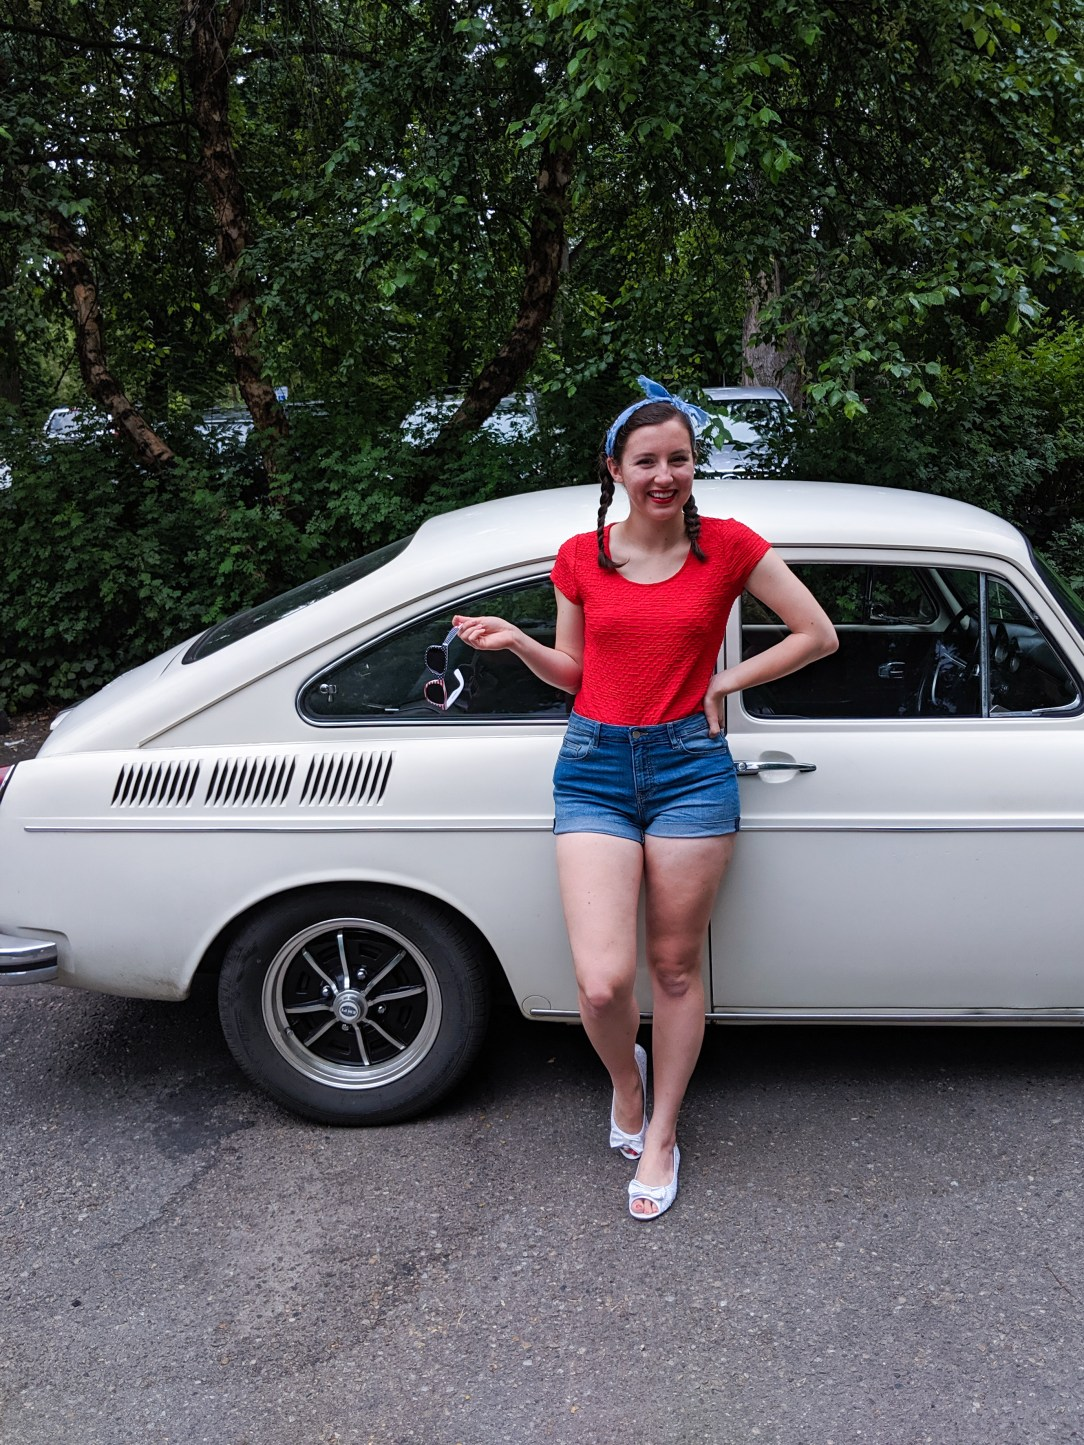 1970 Volkswagen Fastback, patriotic outfit, USA